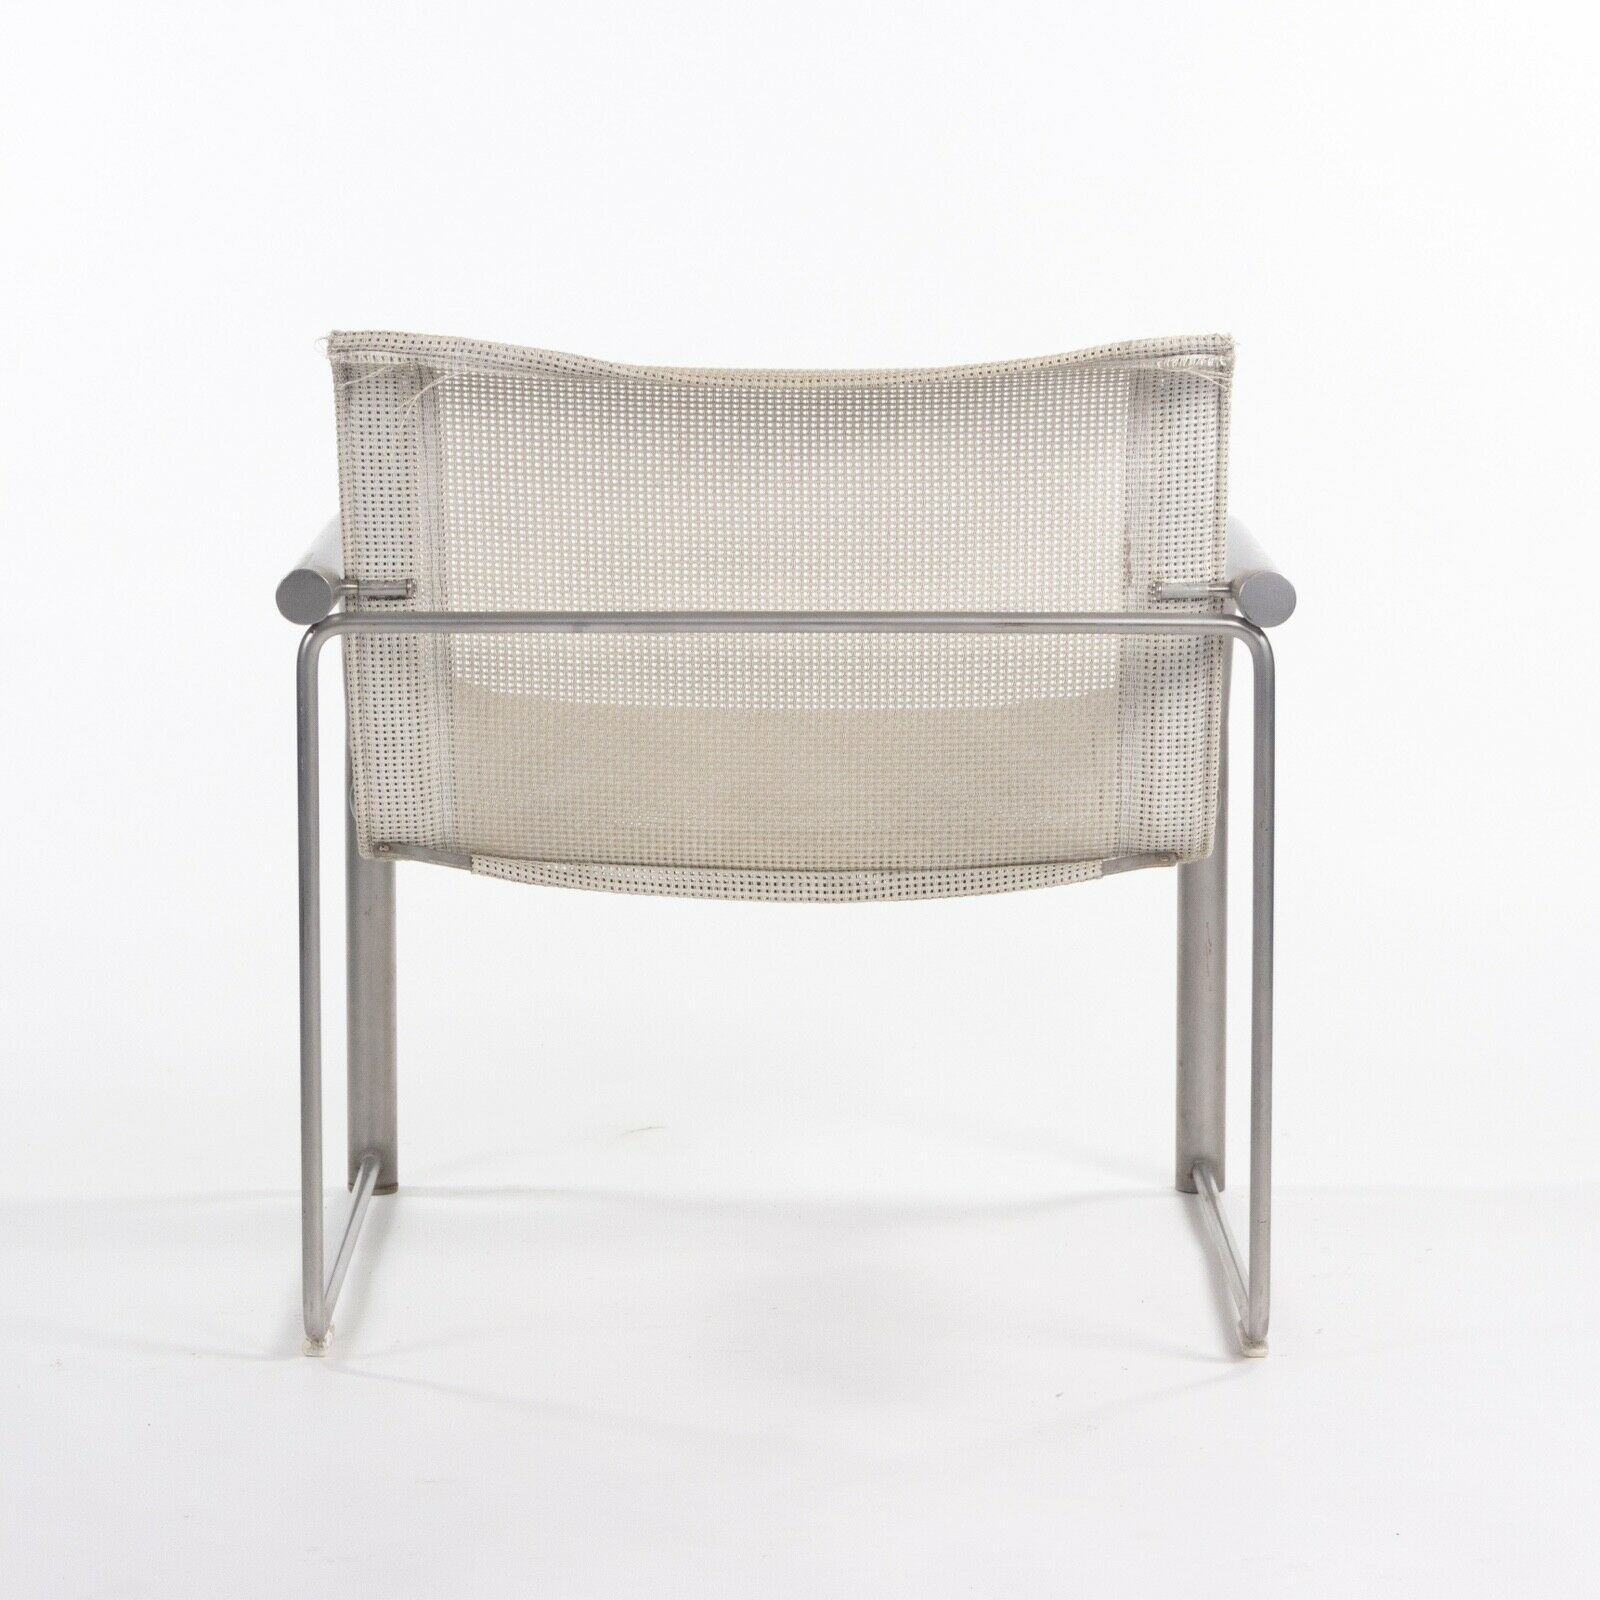 1980 Prototype Richard Schultz for Knoll Stainless Steel & Mesh Lounge Chair